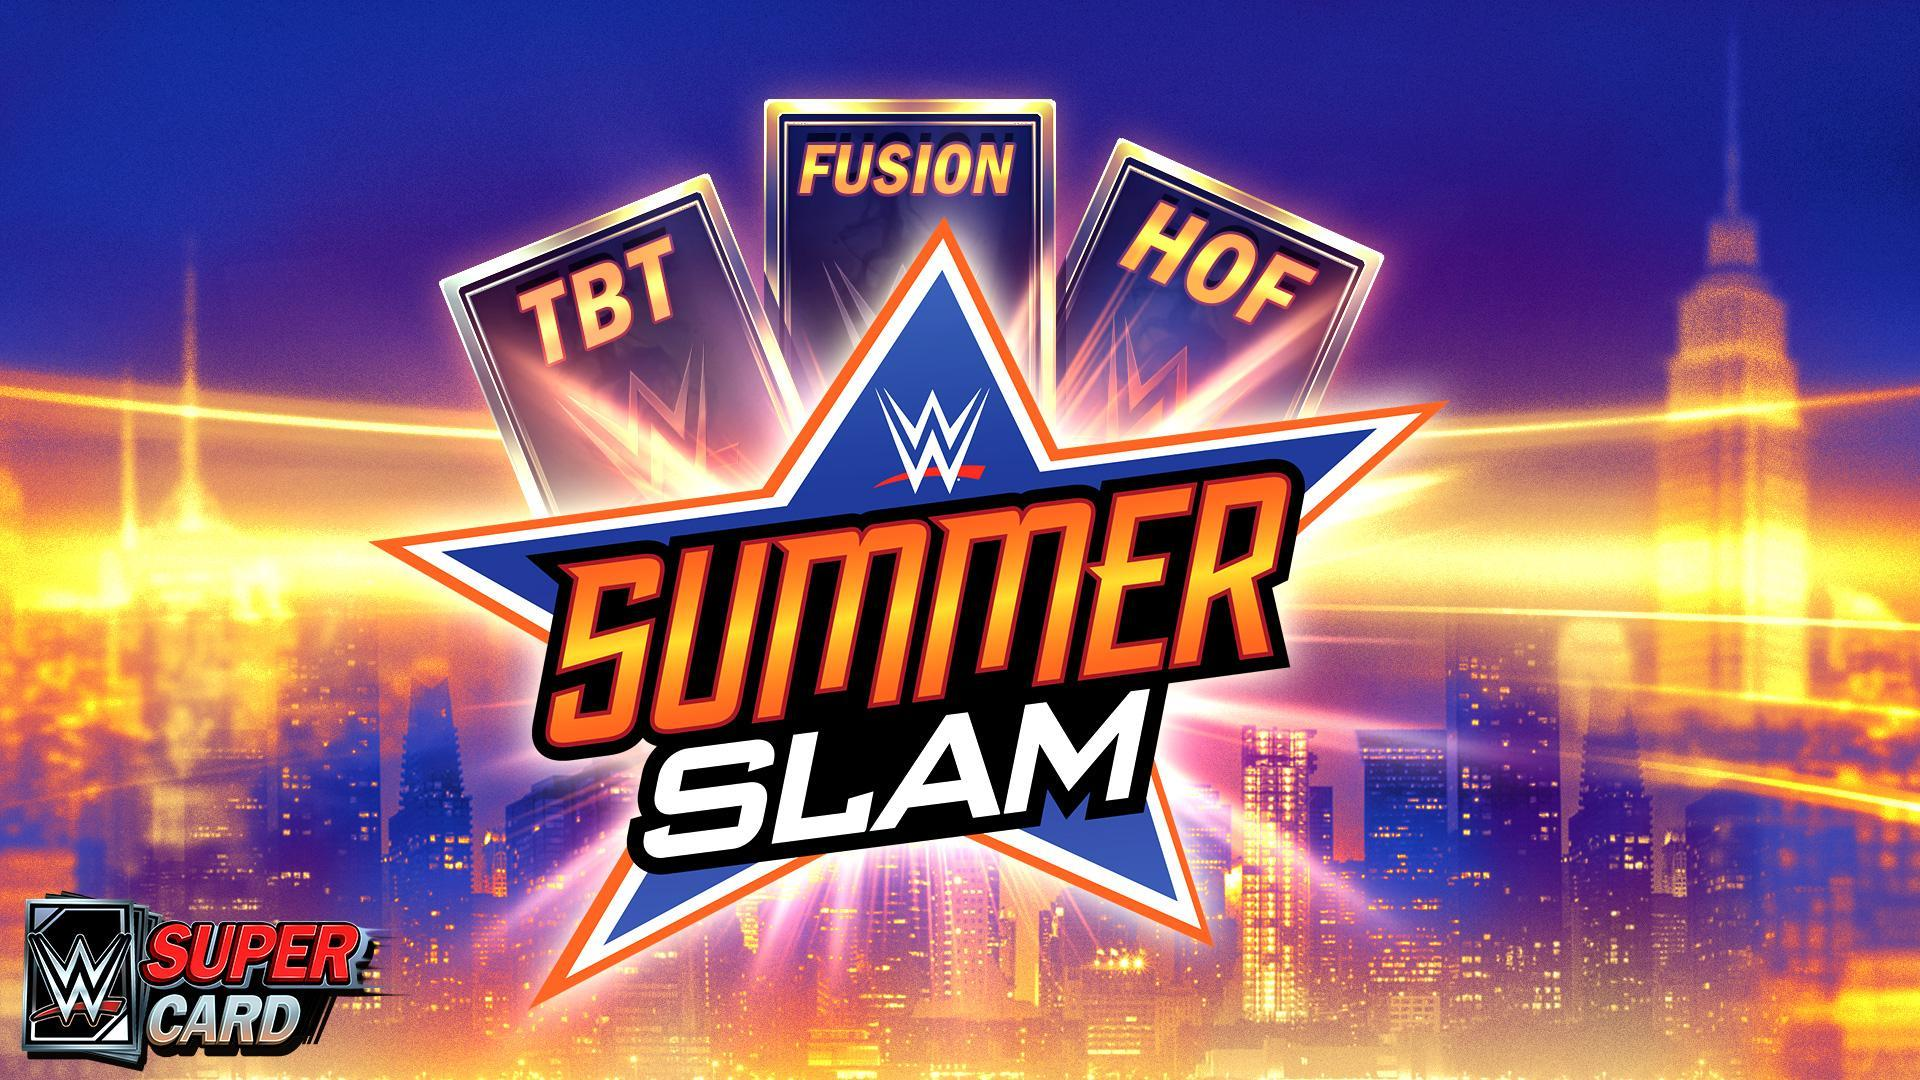 WWE SuperCard: New SummerSlam '18 Throwback, Fusion and Hall of Fame Cards